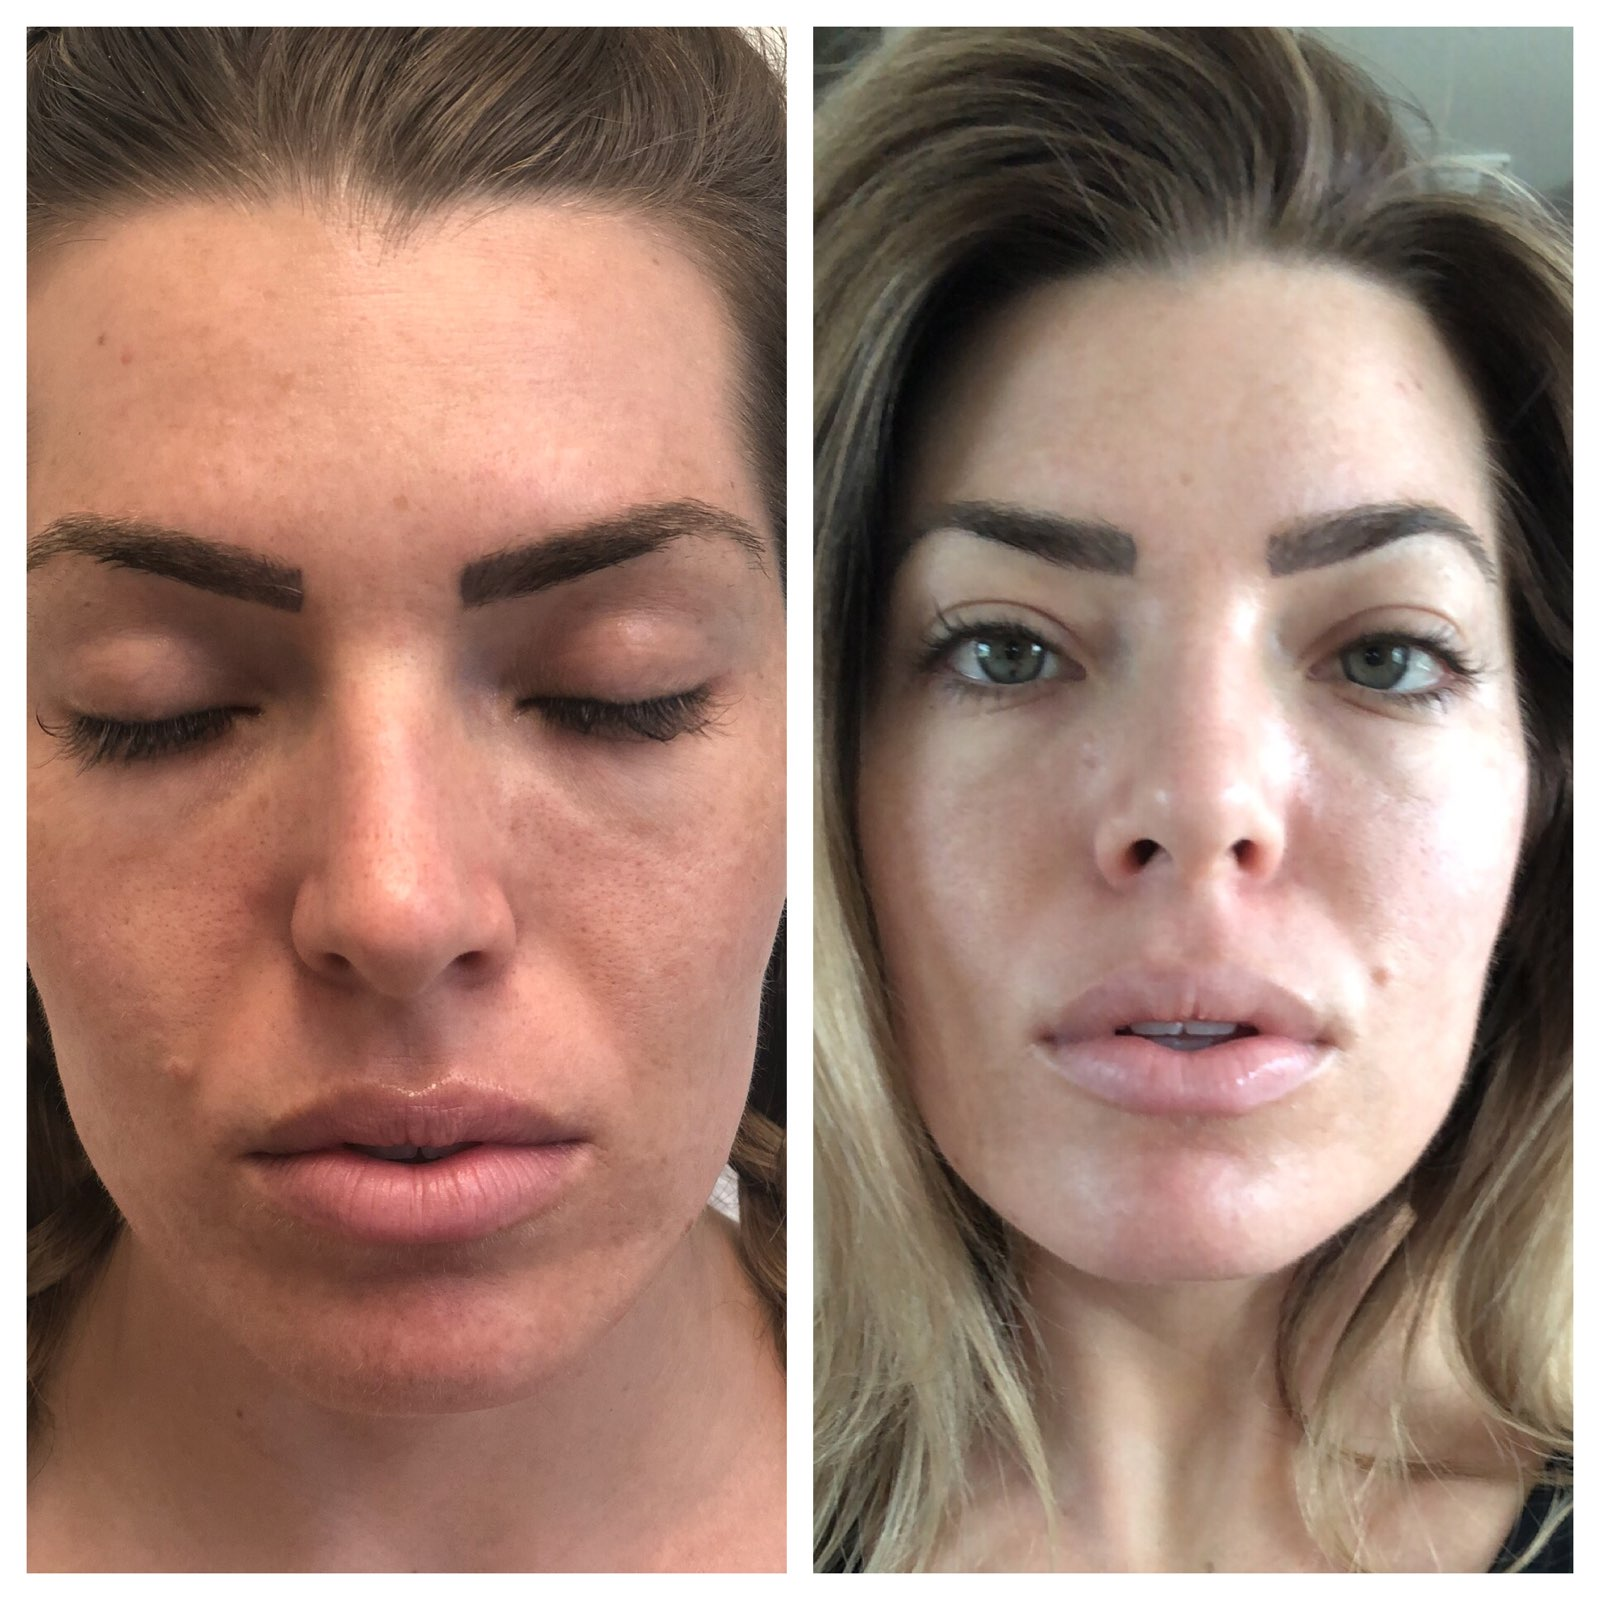 vipeelbefore and after 1